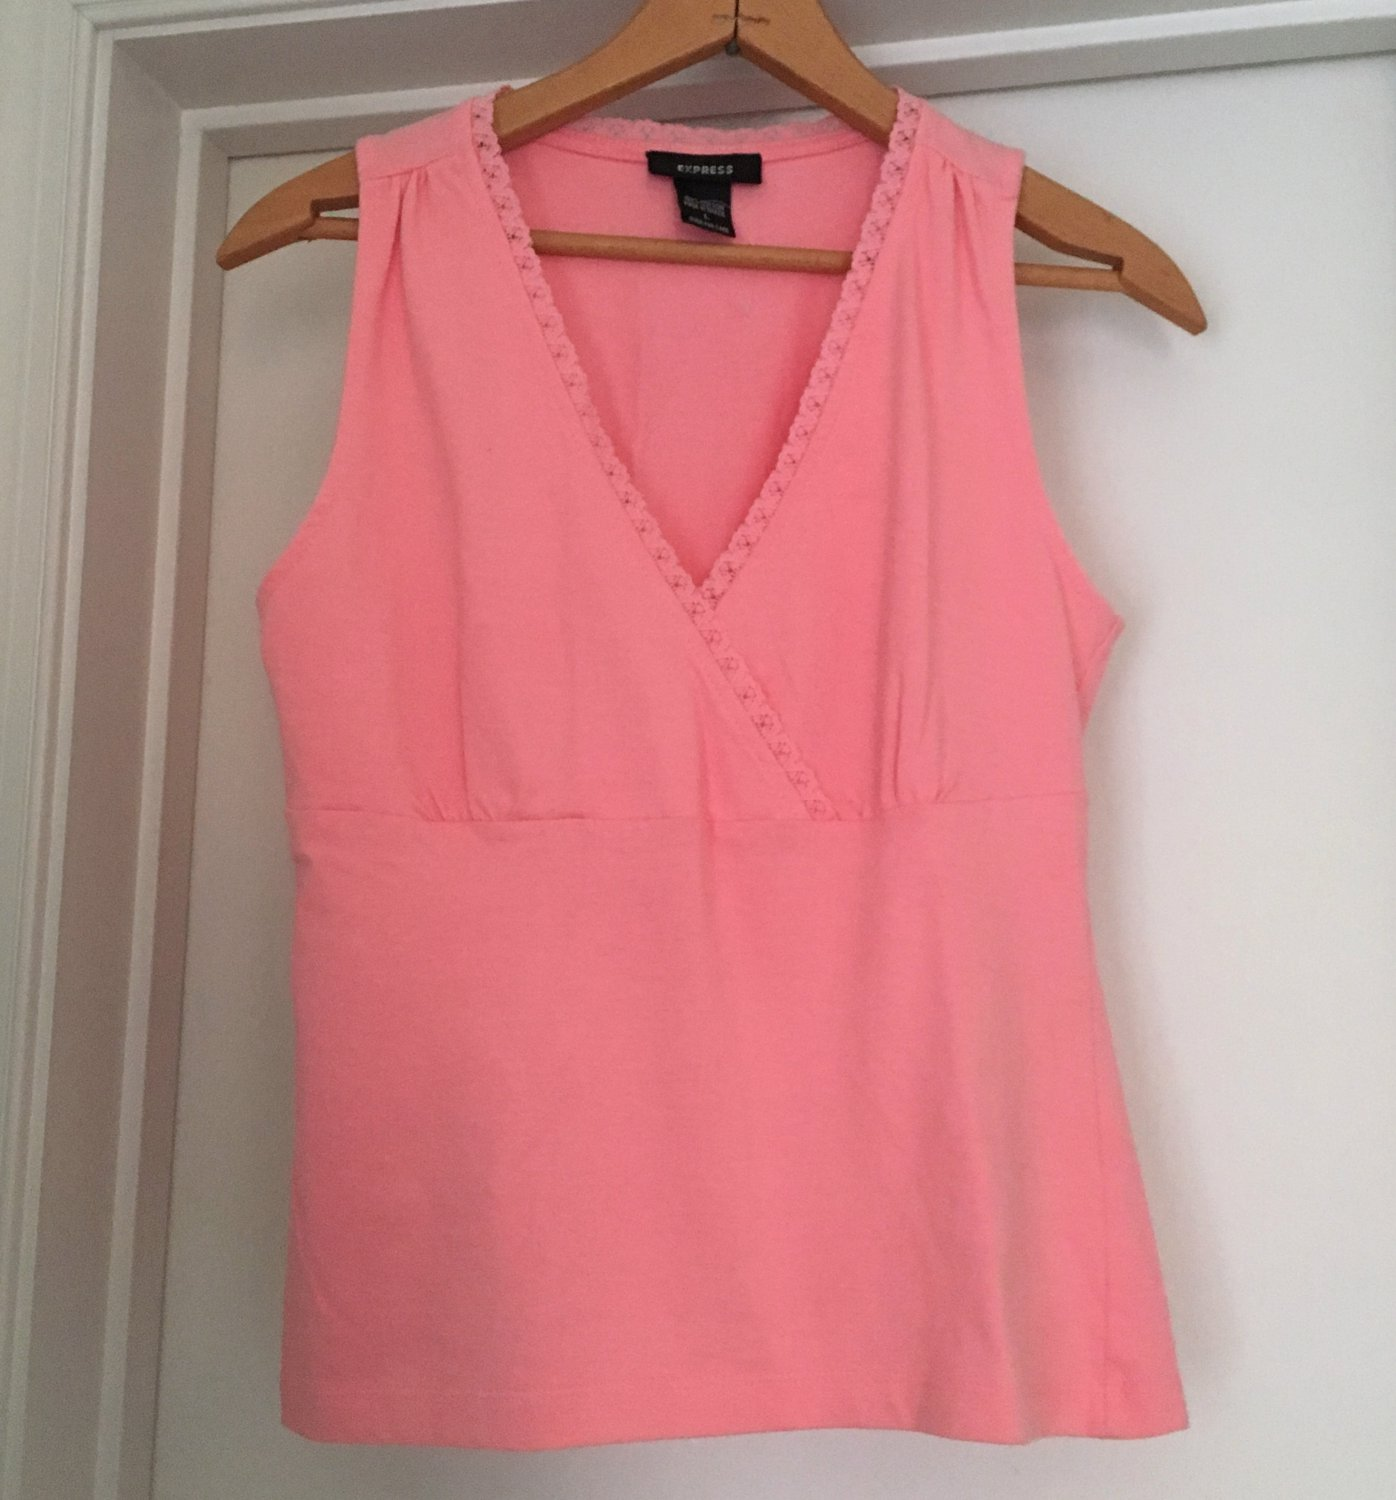 Crop Sleeveless Tank Criss Cross V Neck Empire Cut  Coral Pink New Vintage 1990s Stock Cropped Top